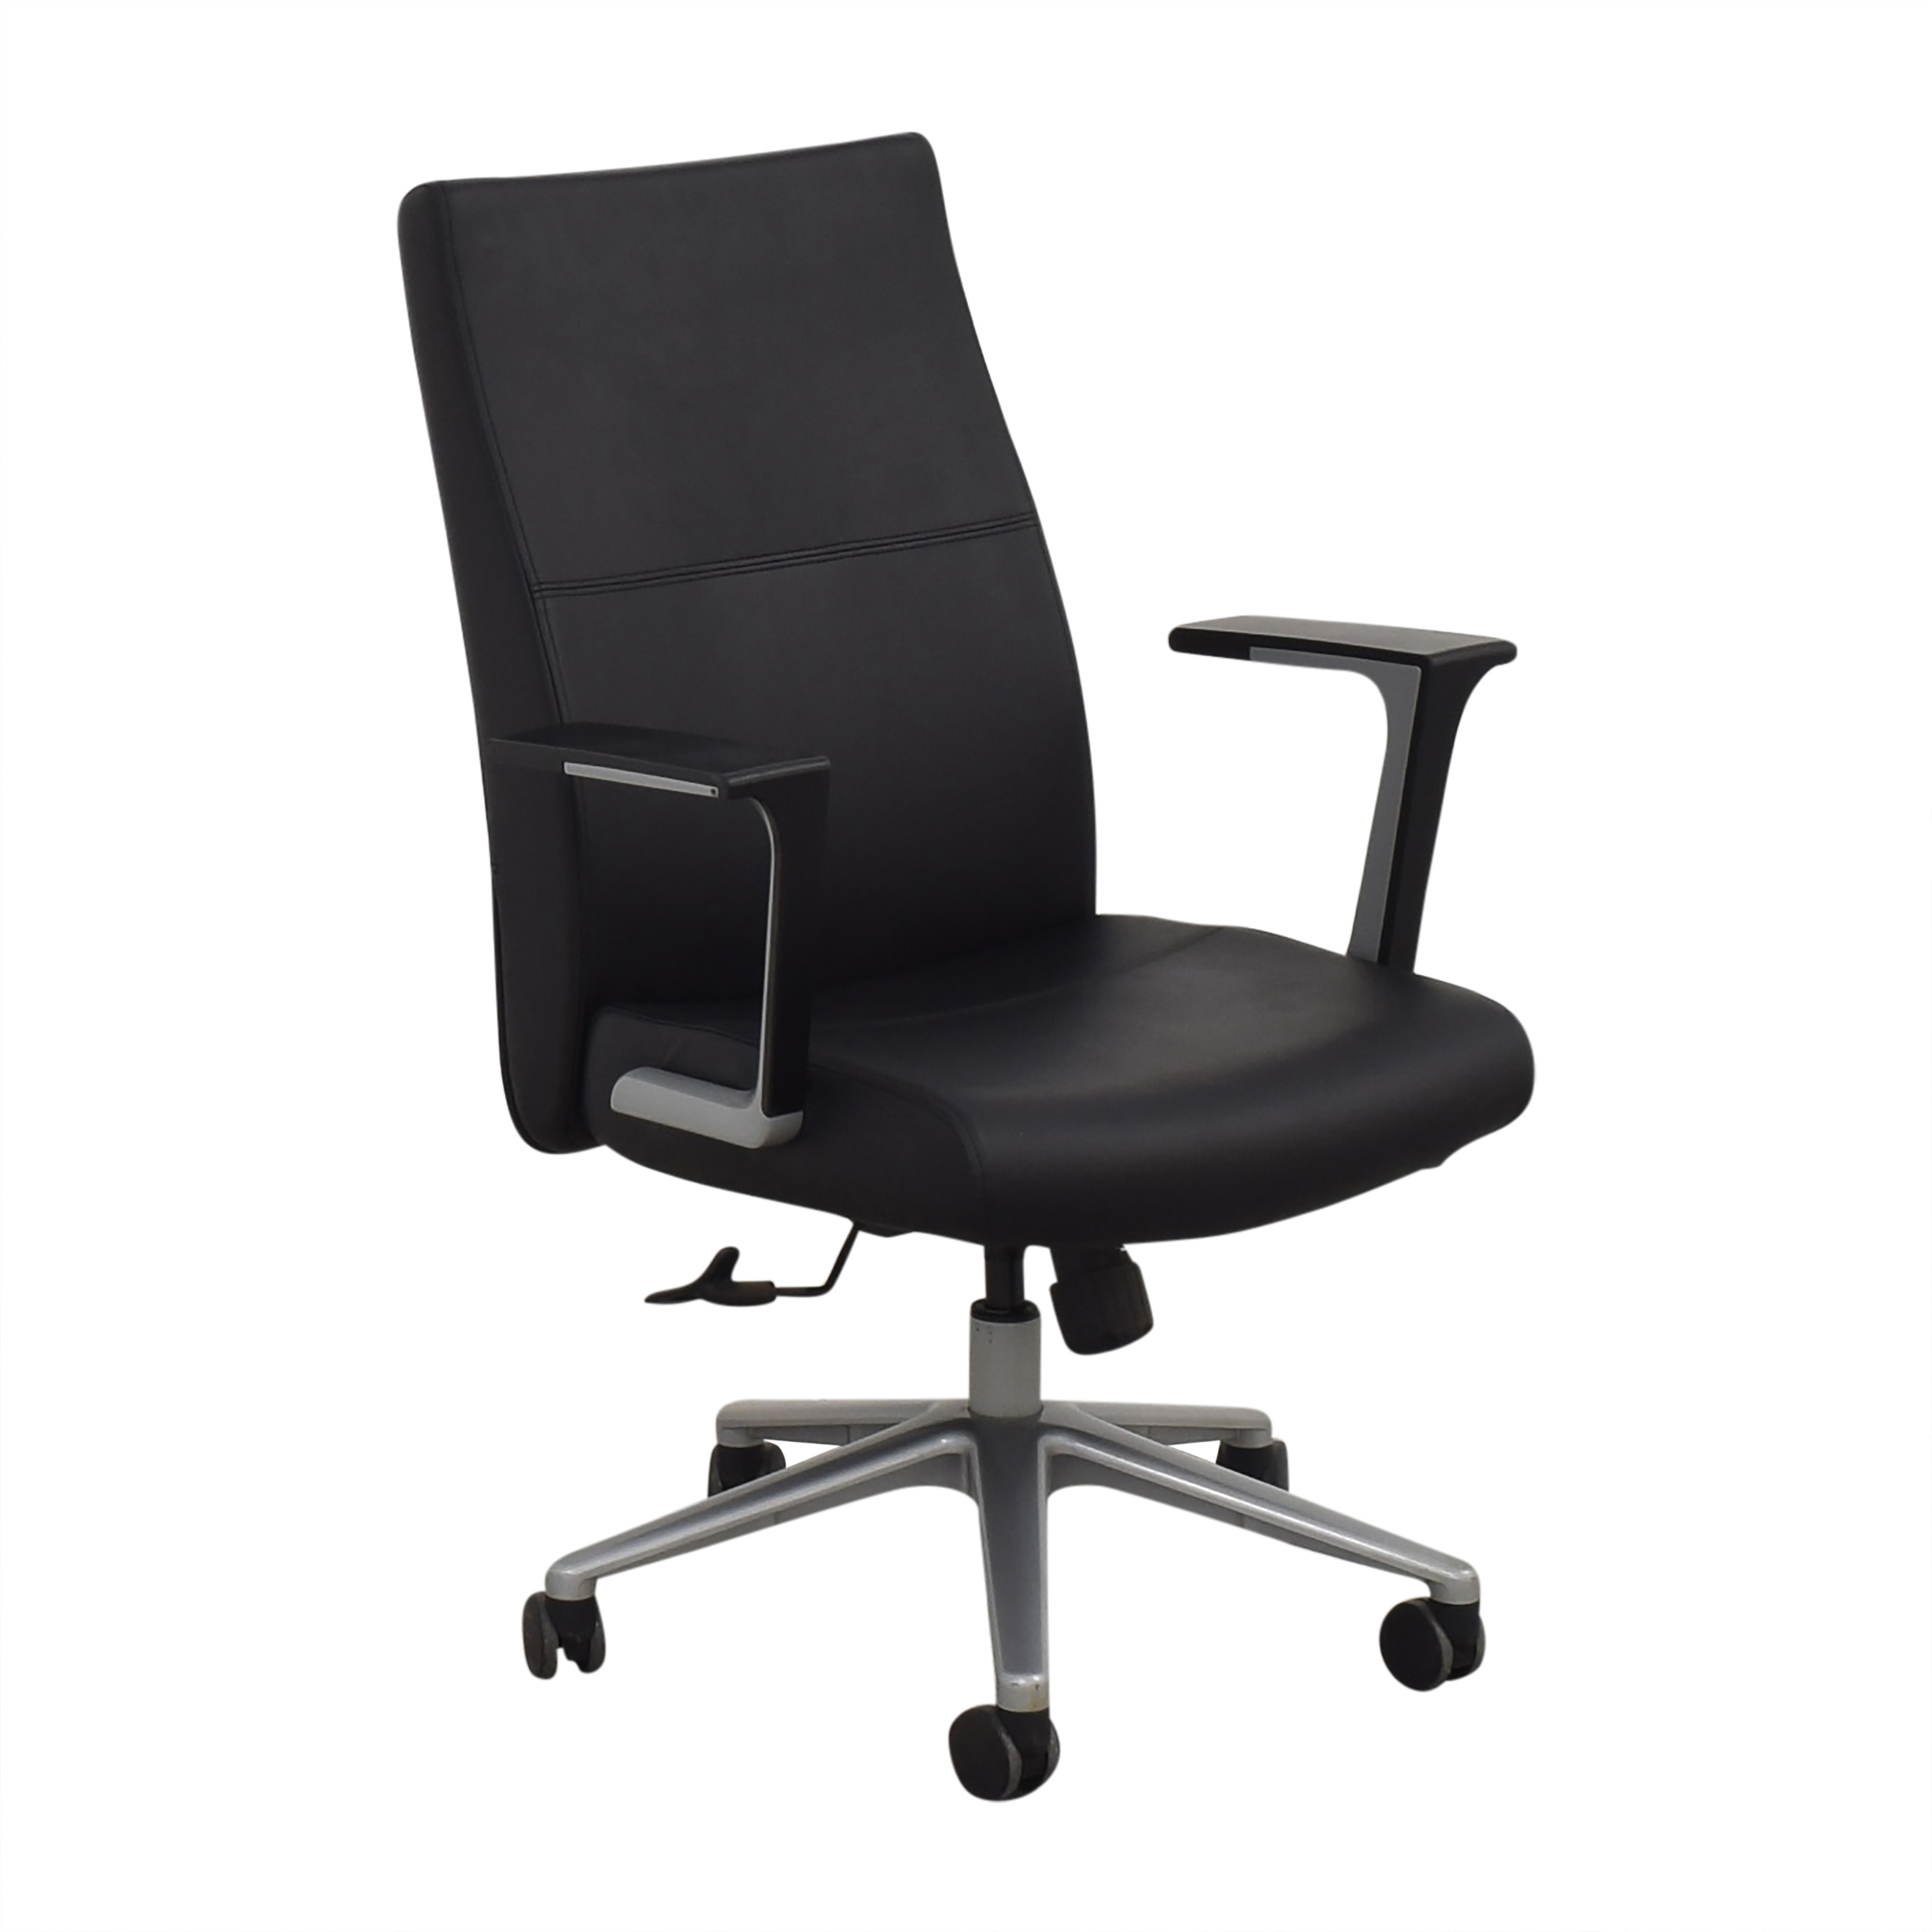 SitOnIt SitOnIt Prava Office Chair used